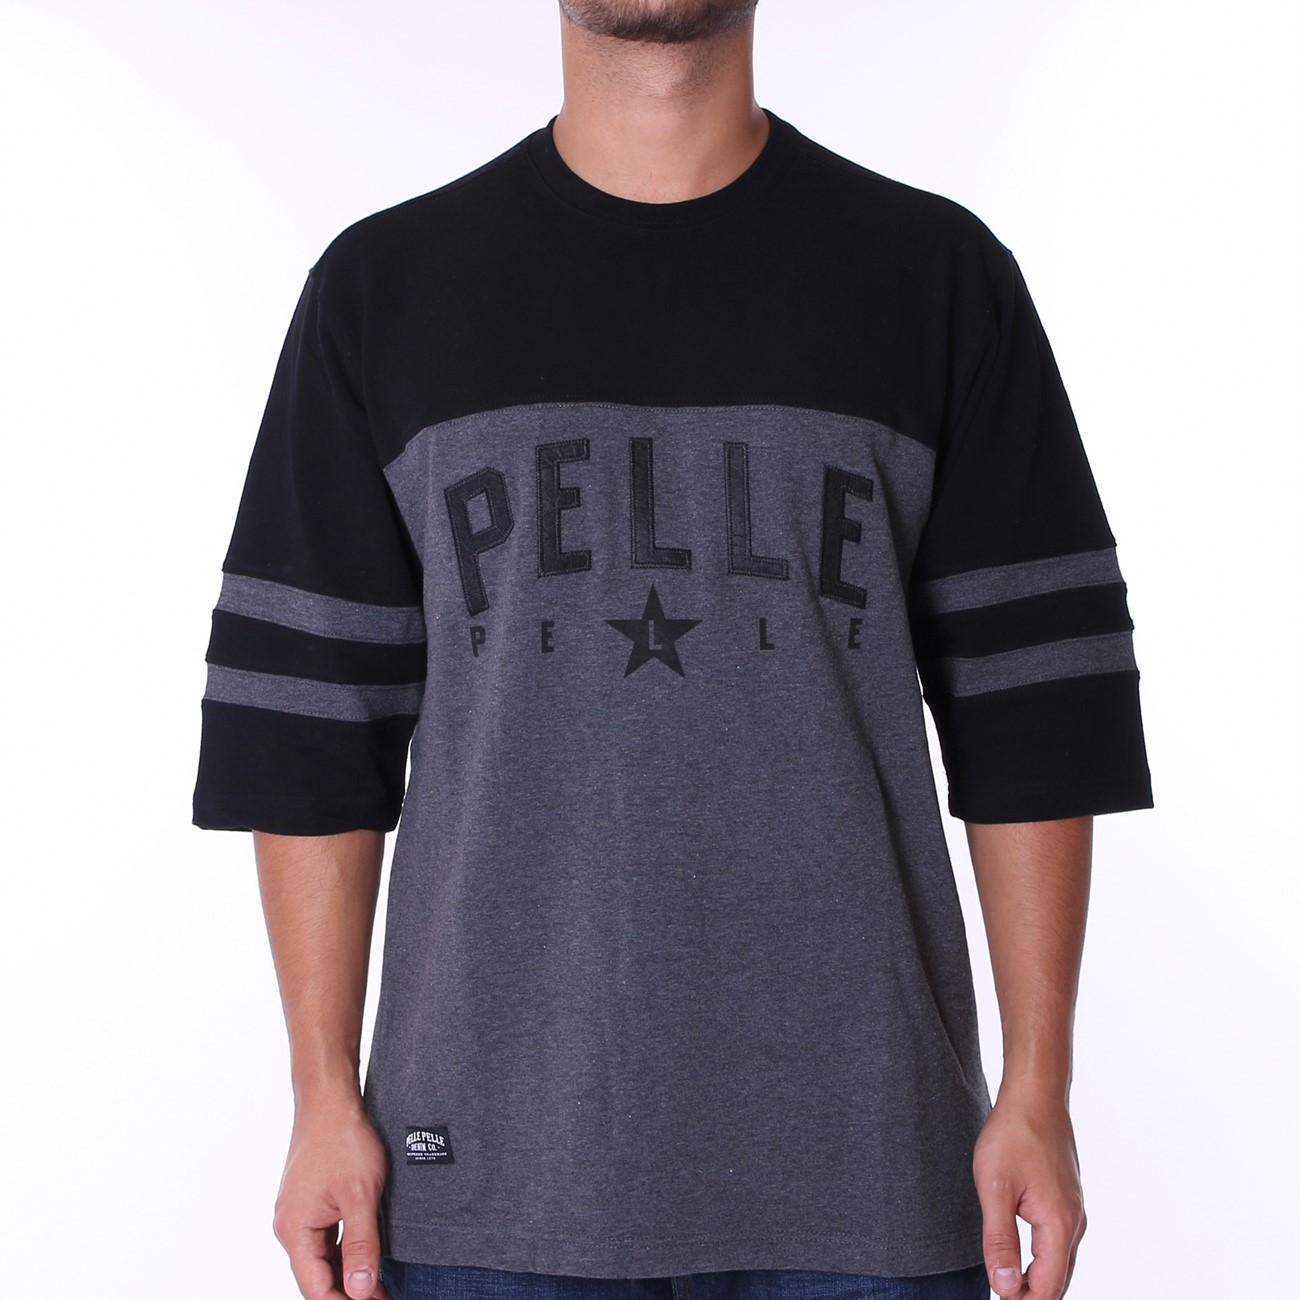 Bay area heavy t shirt s s pelle pelle store europe for South bay t shirts